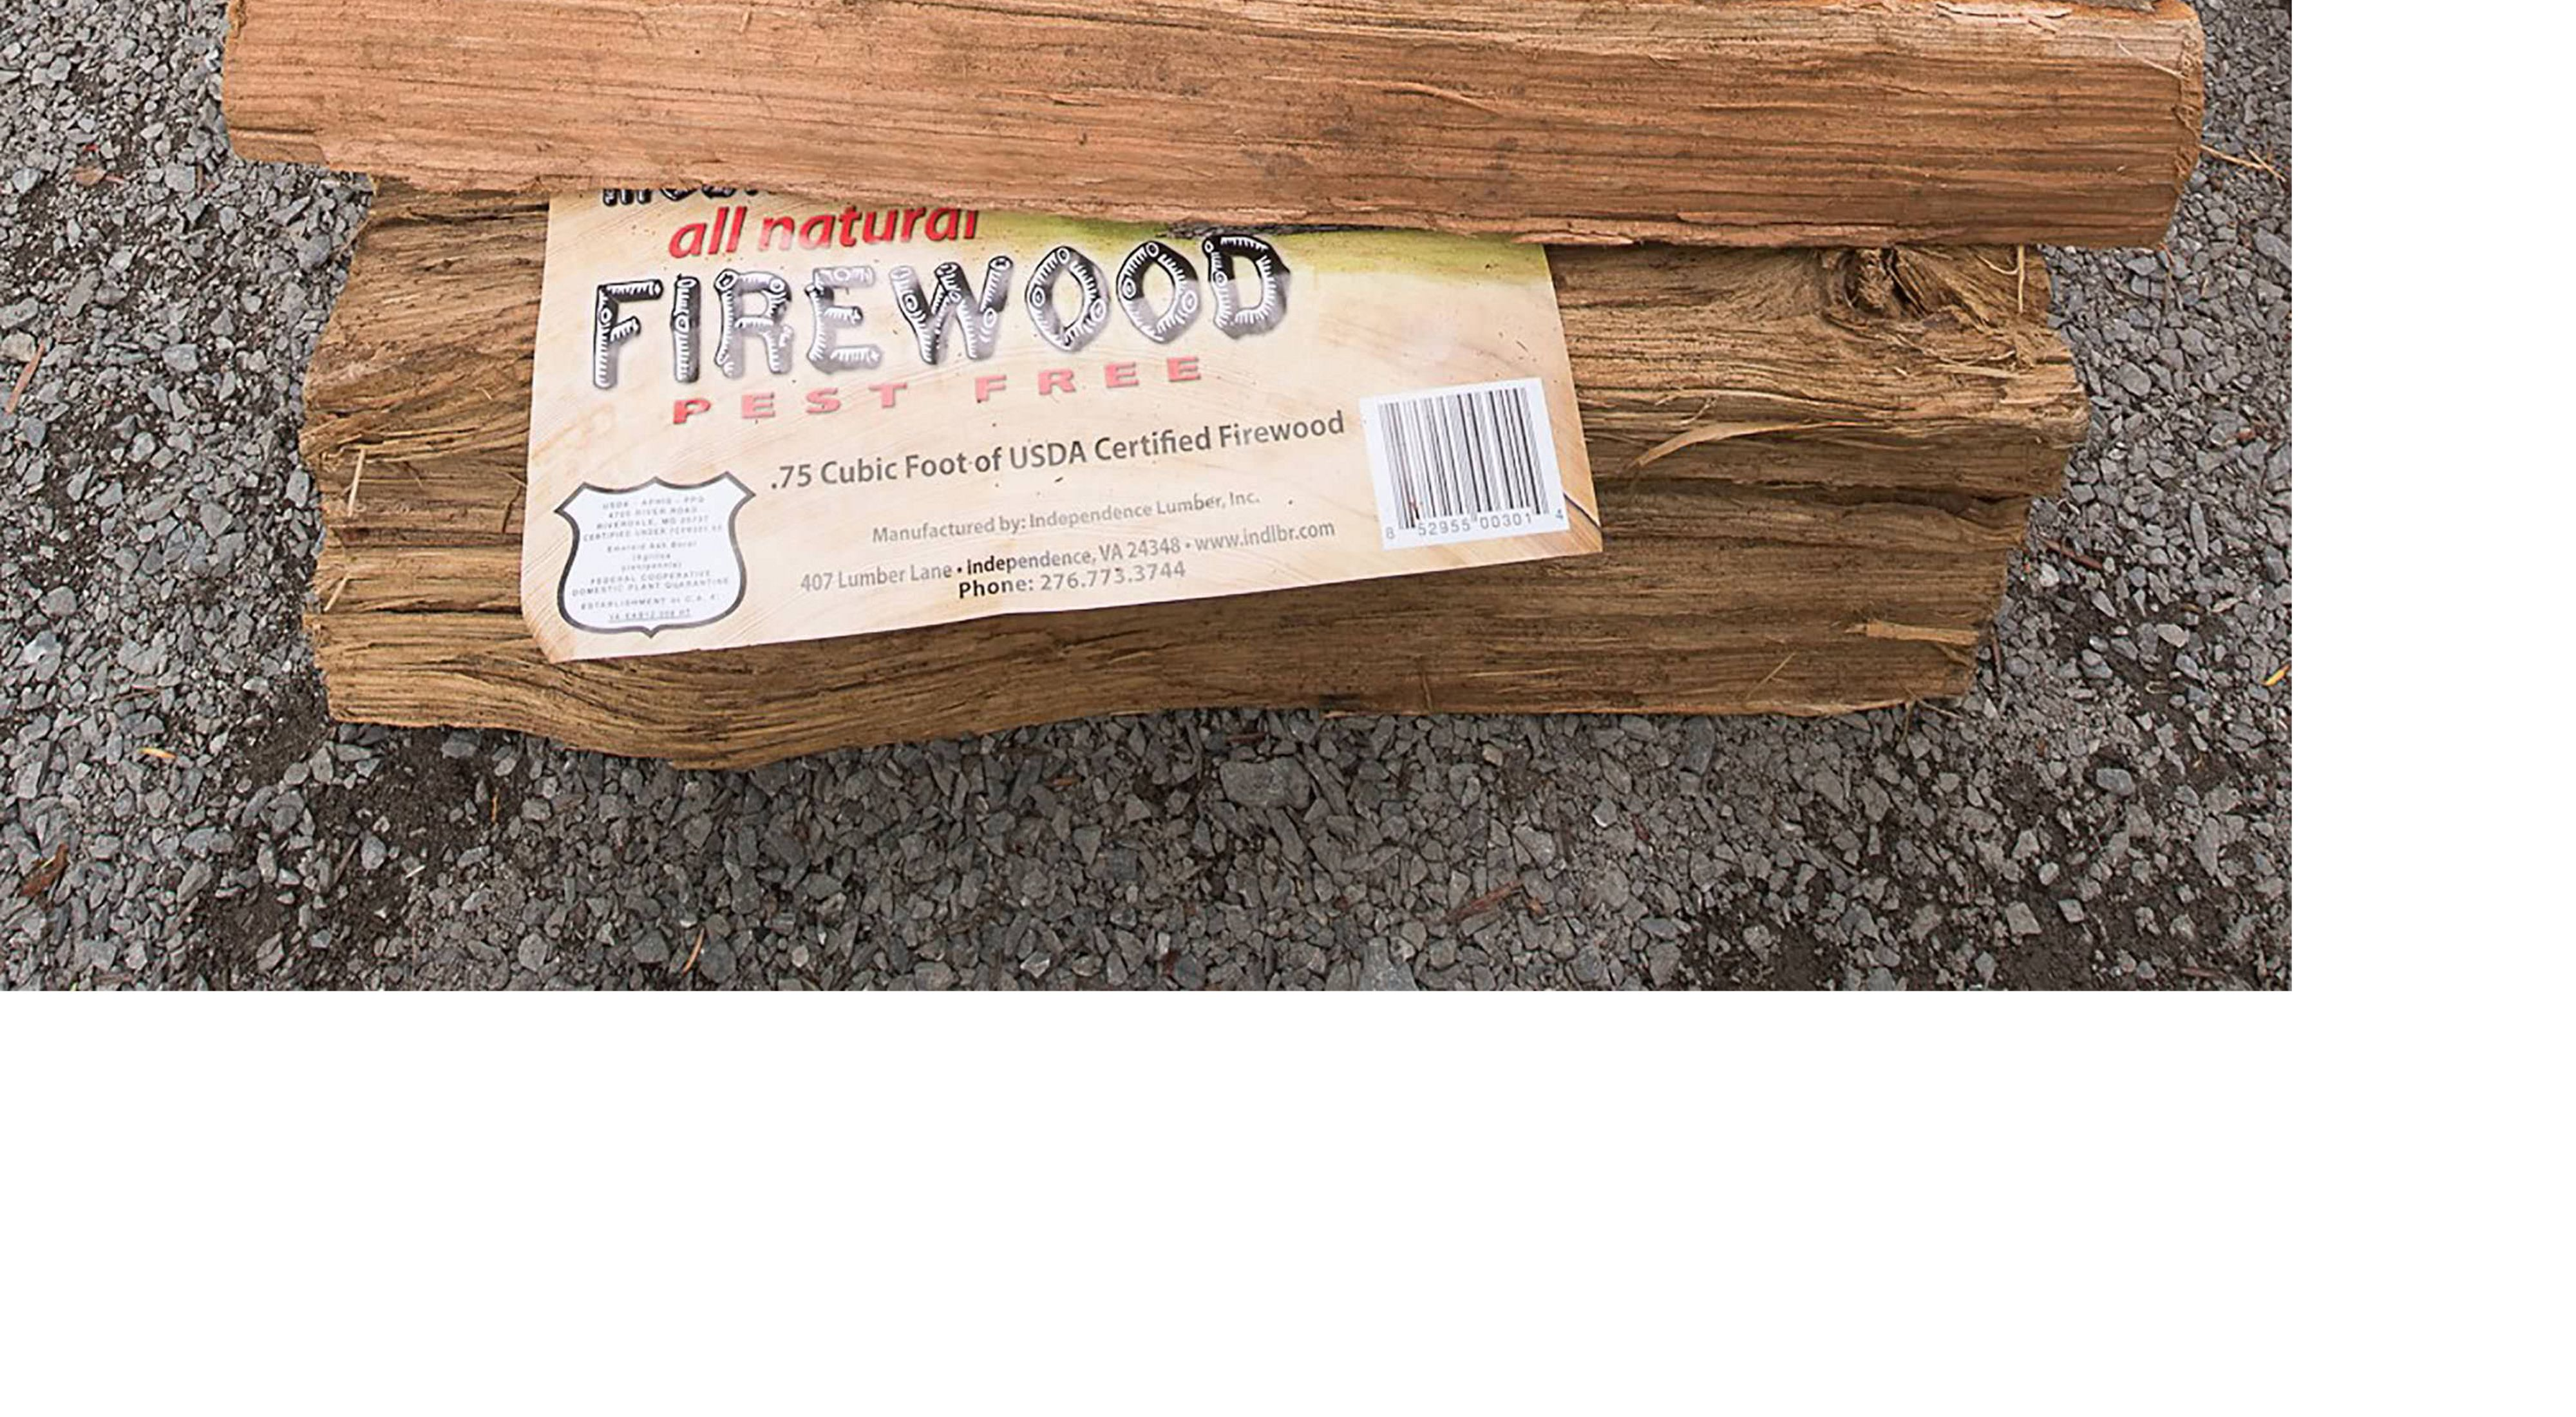 A pile of heat-treated firewood awaits purchase.